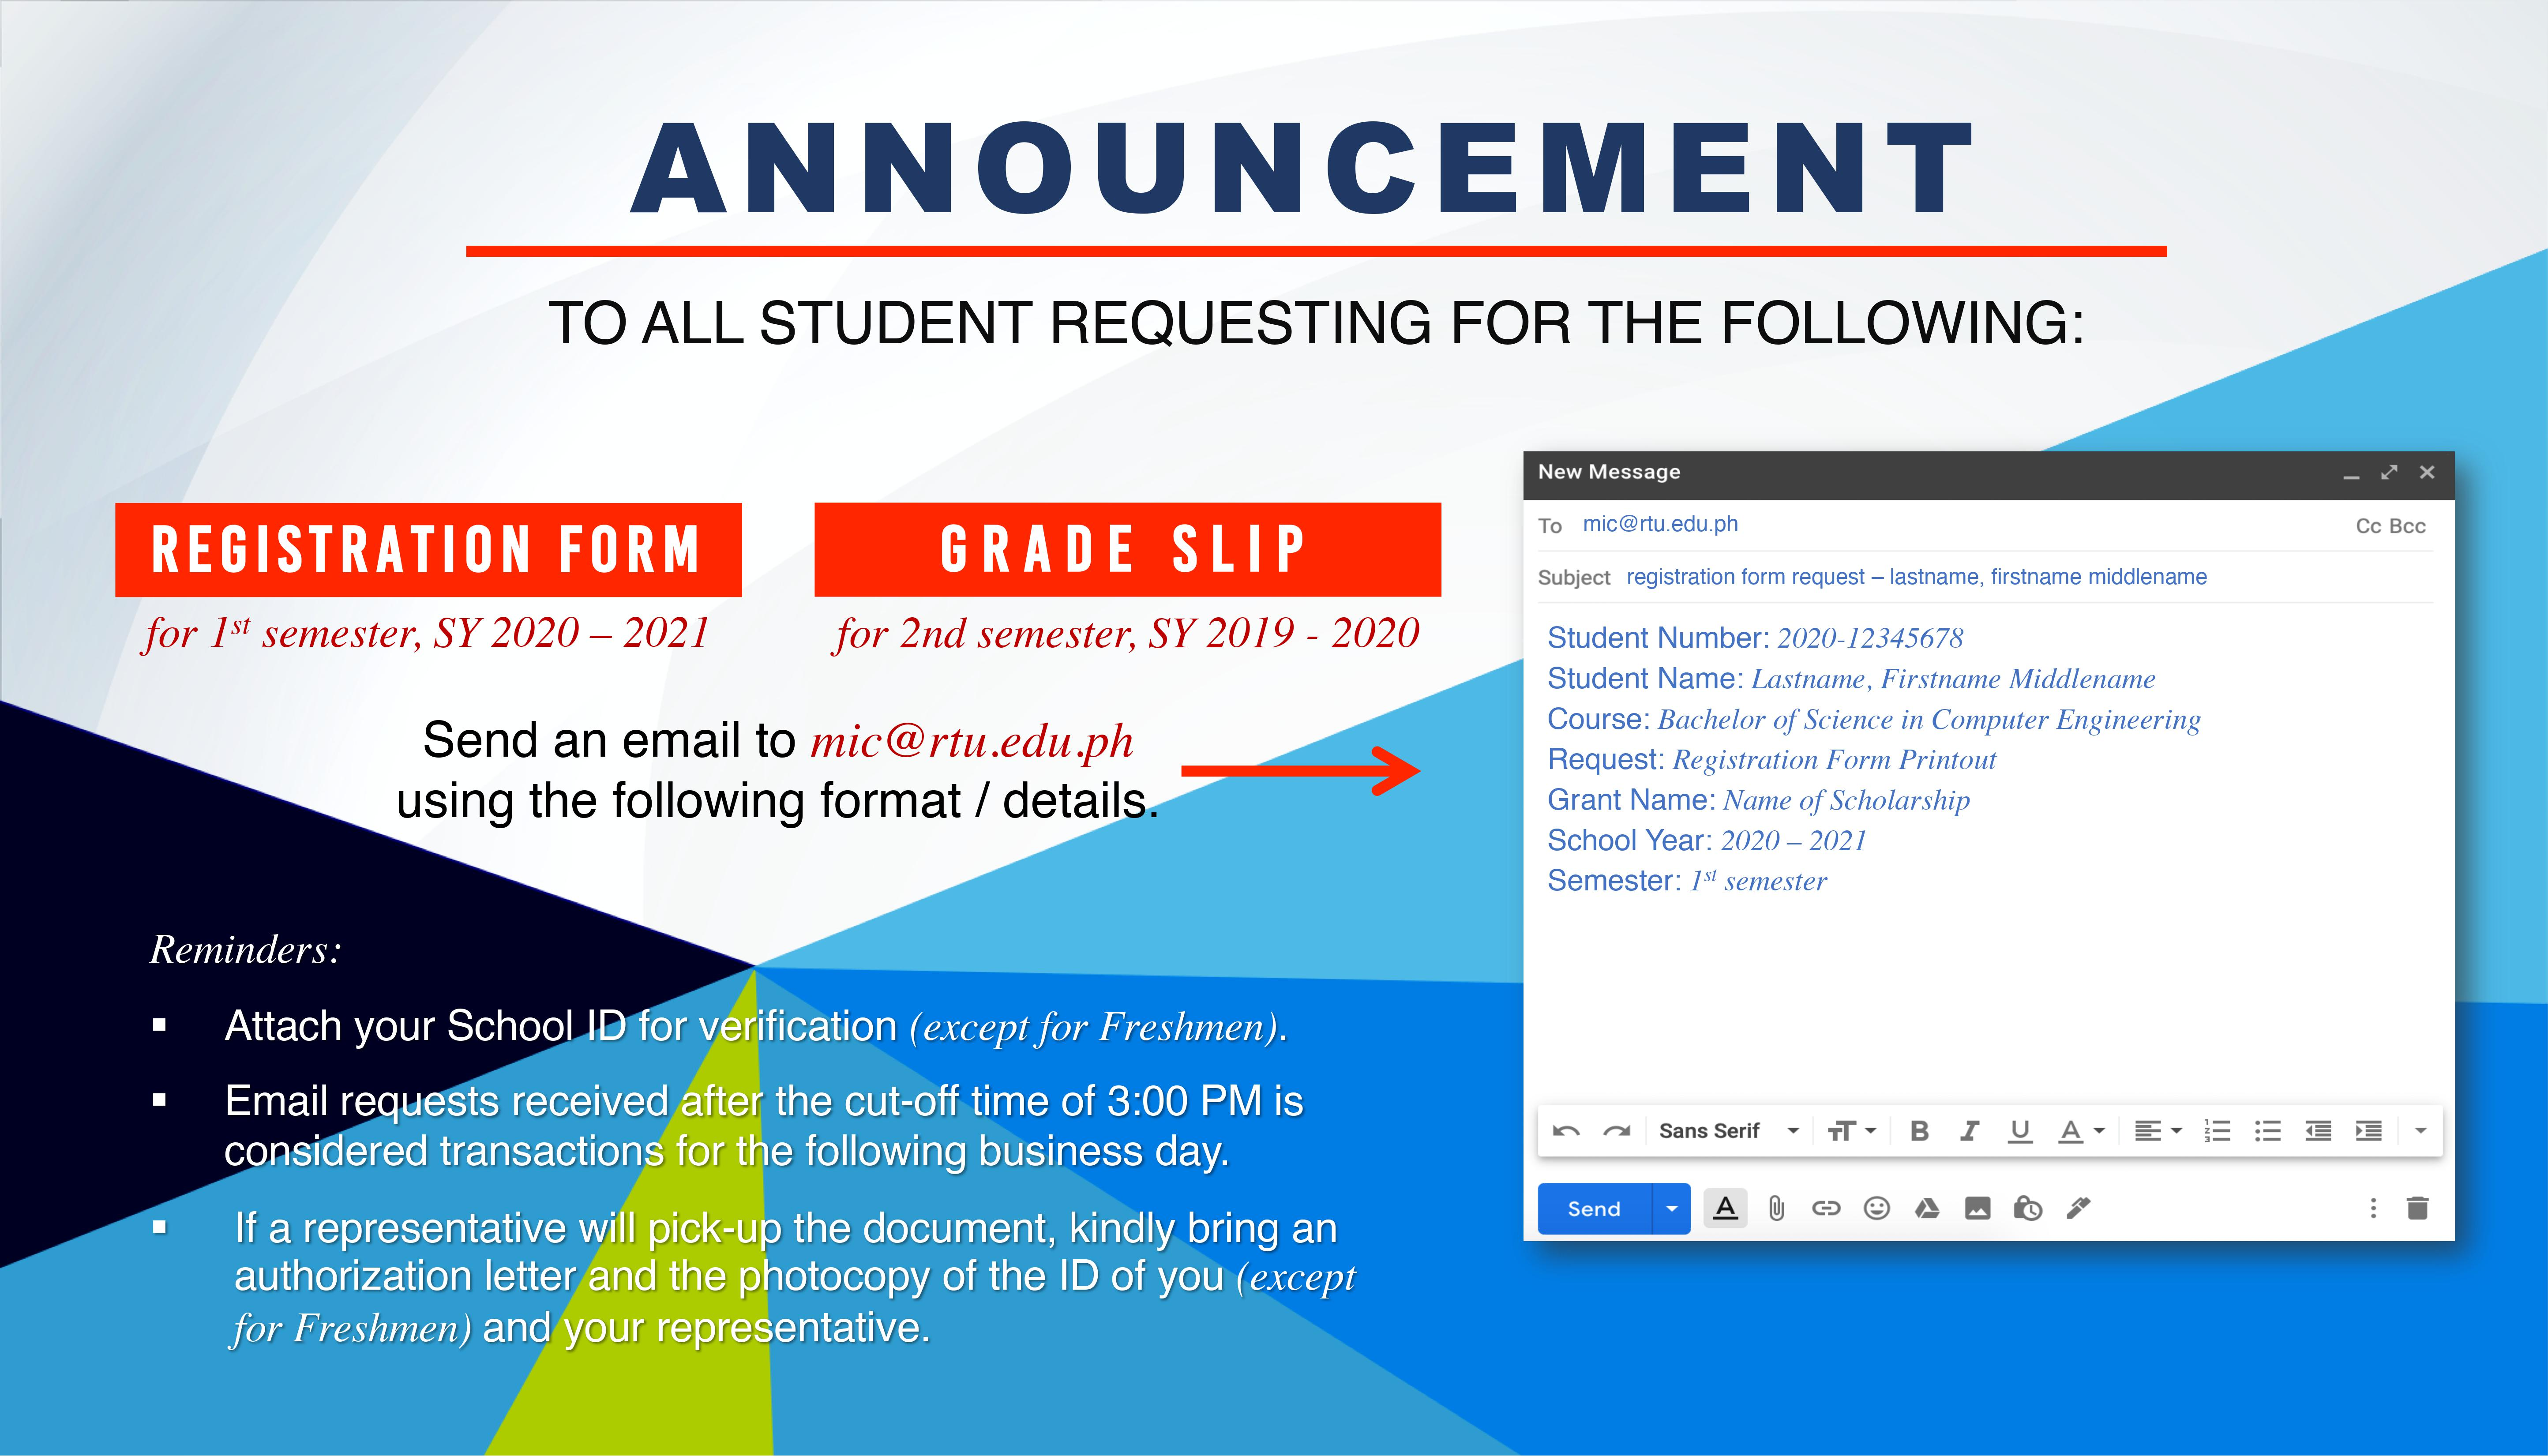 REGISTRATION FORM (SY 2020-2021)AND GRADE SLIP (SY 2019-2020) PROCEDURES.